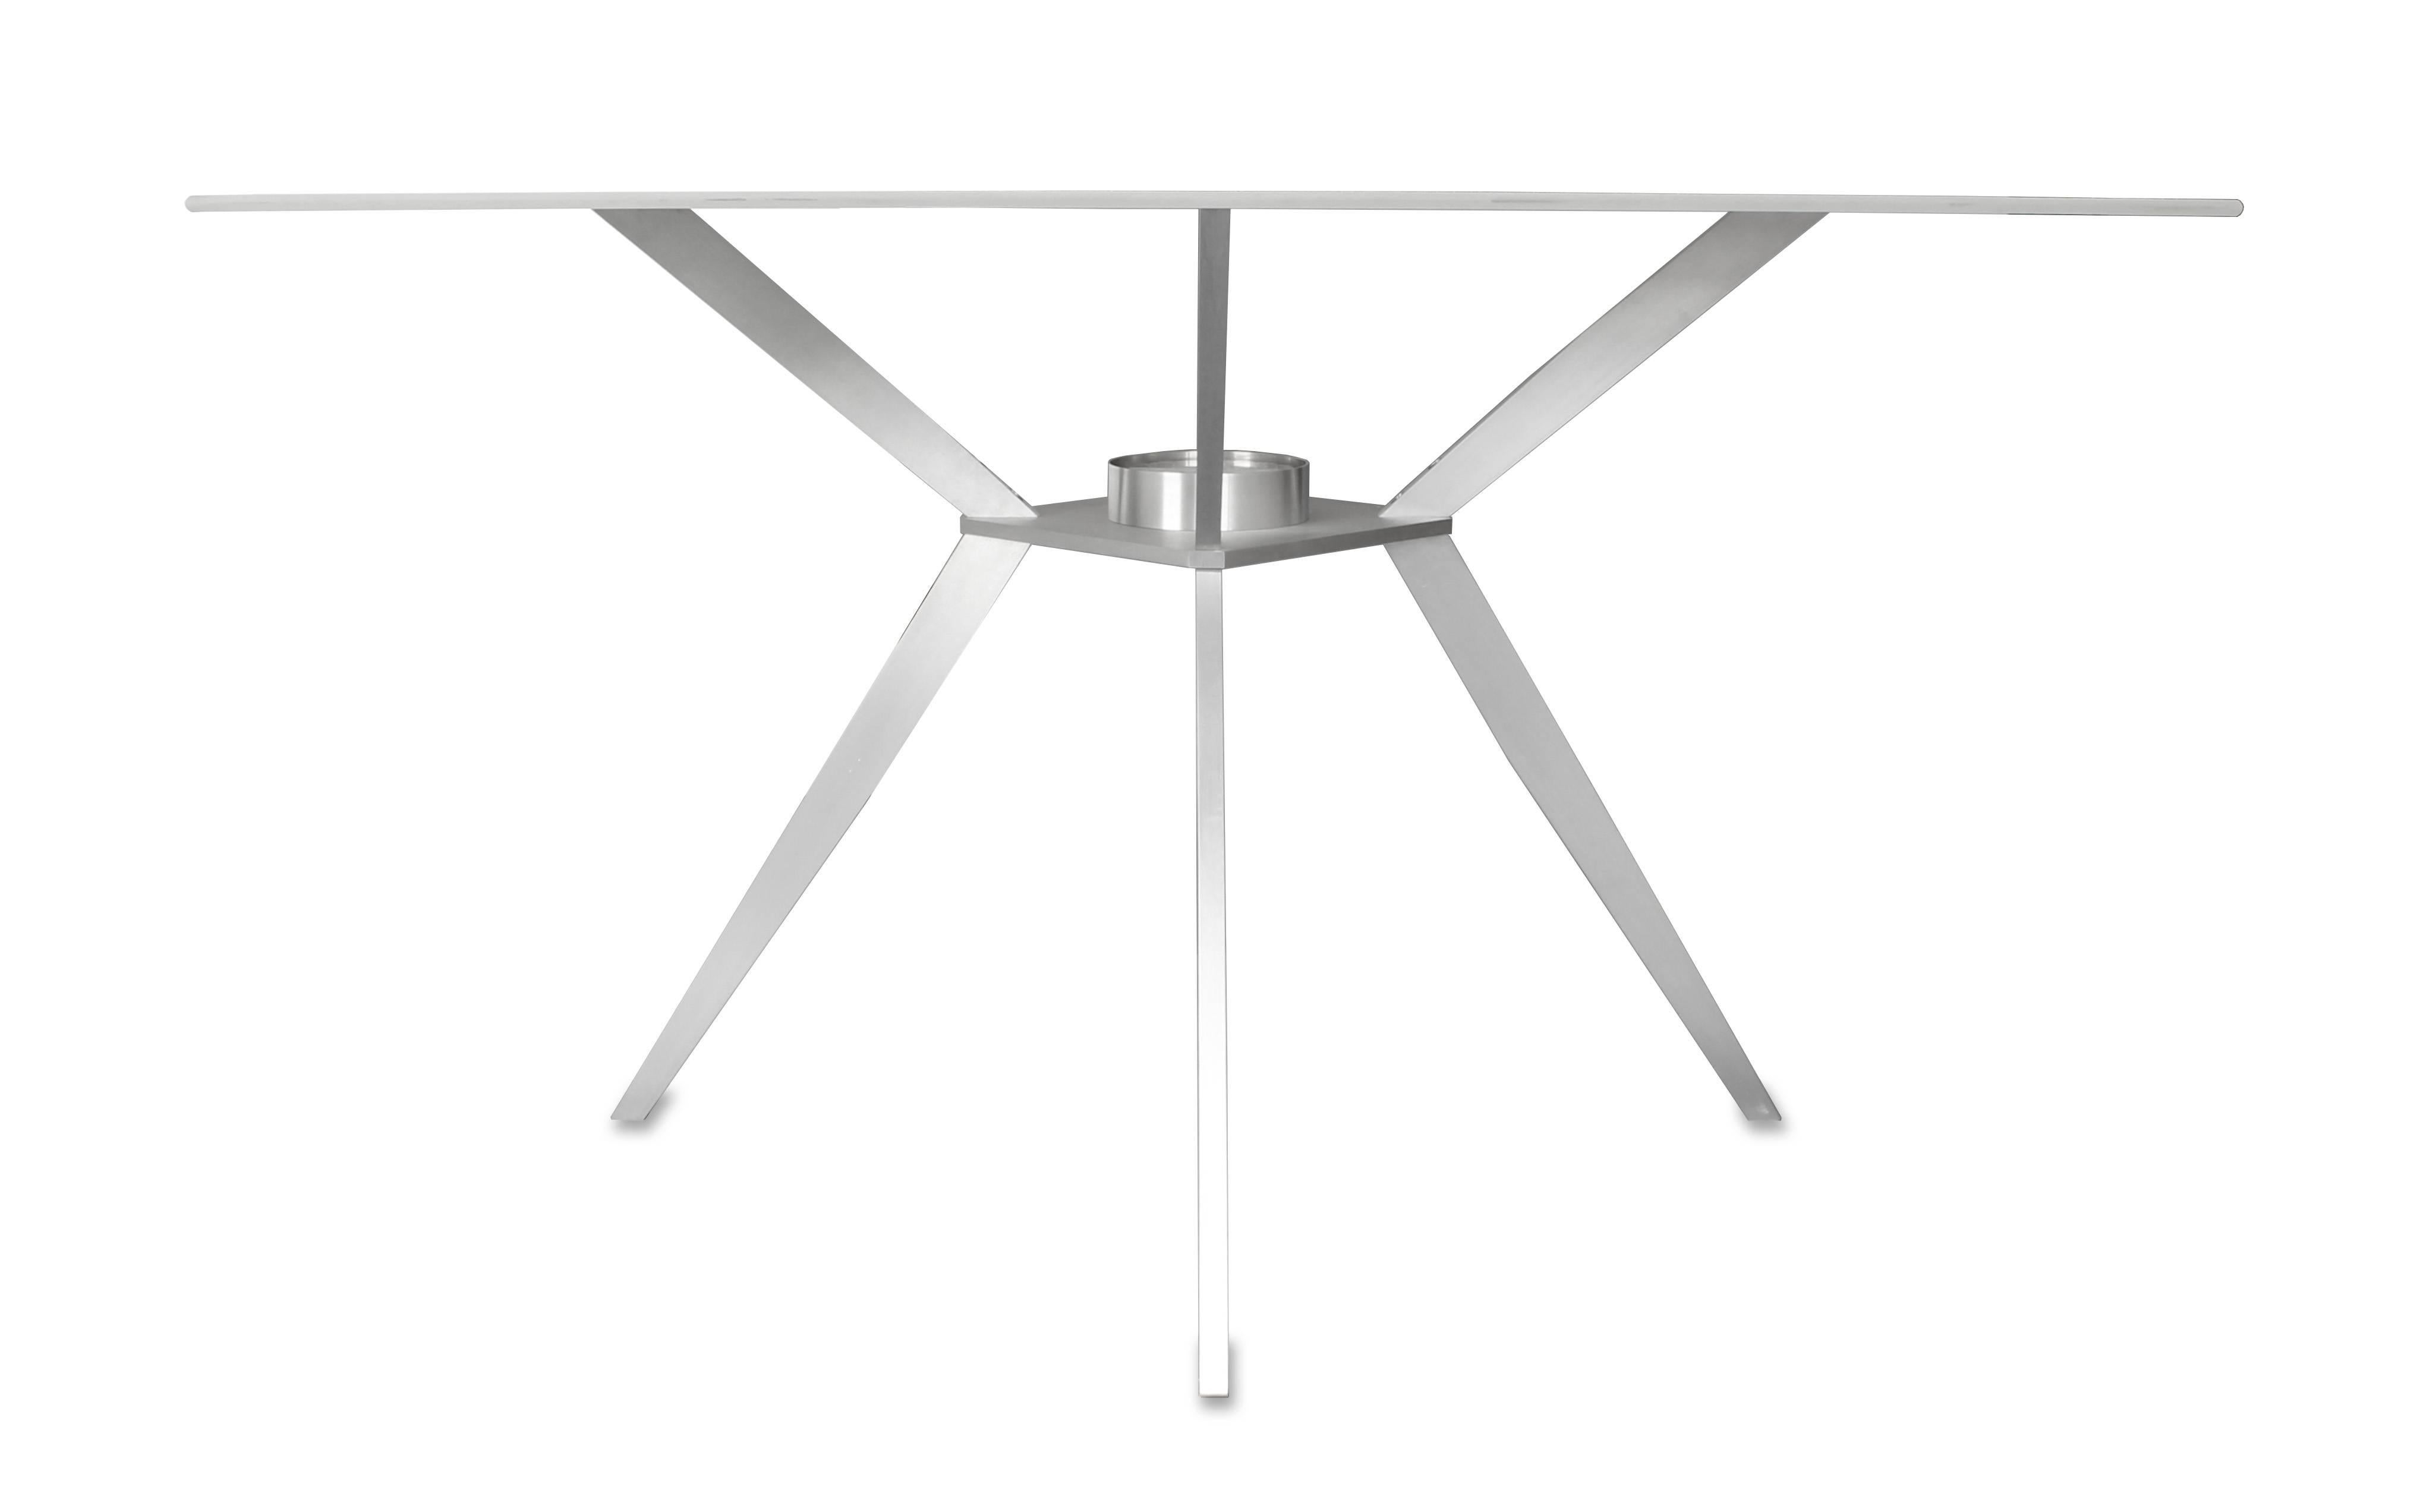 American Square Glass Table Mid Century Modern Inspired With Machined  Aluminum Legs For Sale